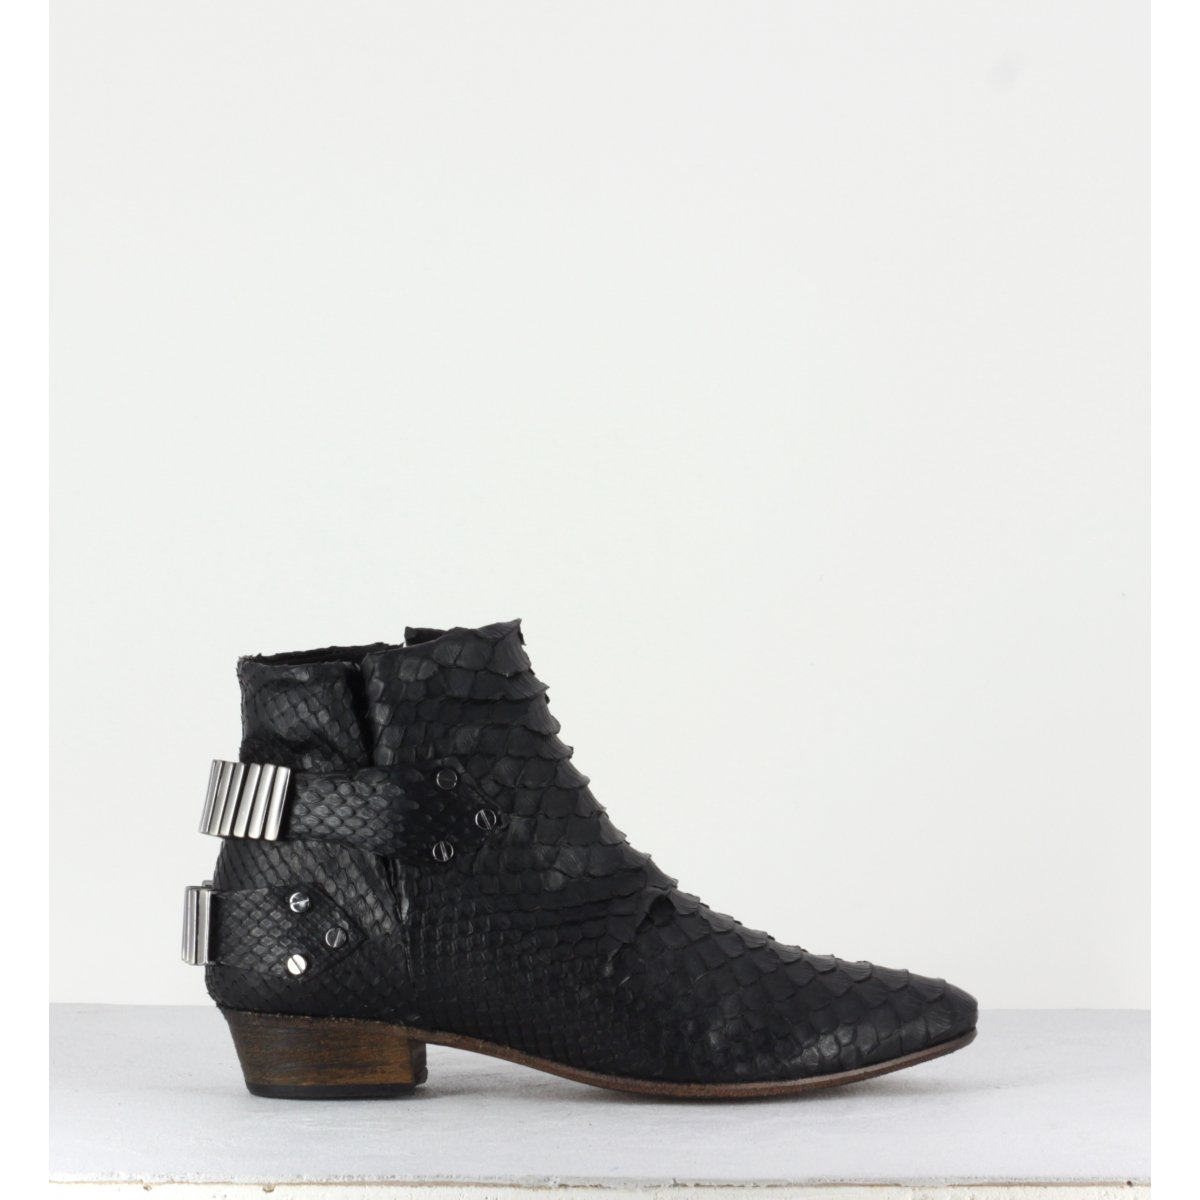 Bottines en python noir et argent Fury London - LO BLACK/SILVER